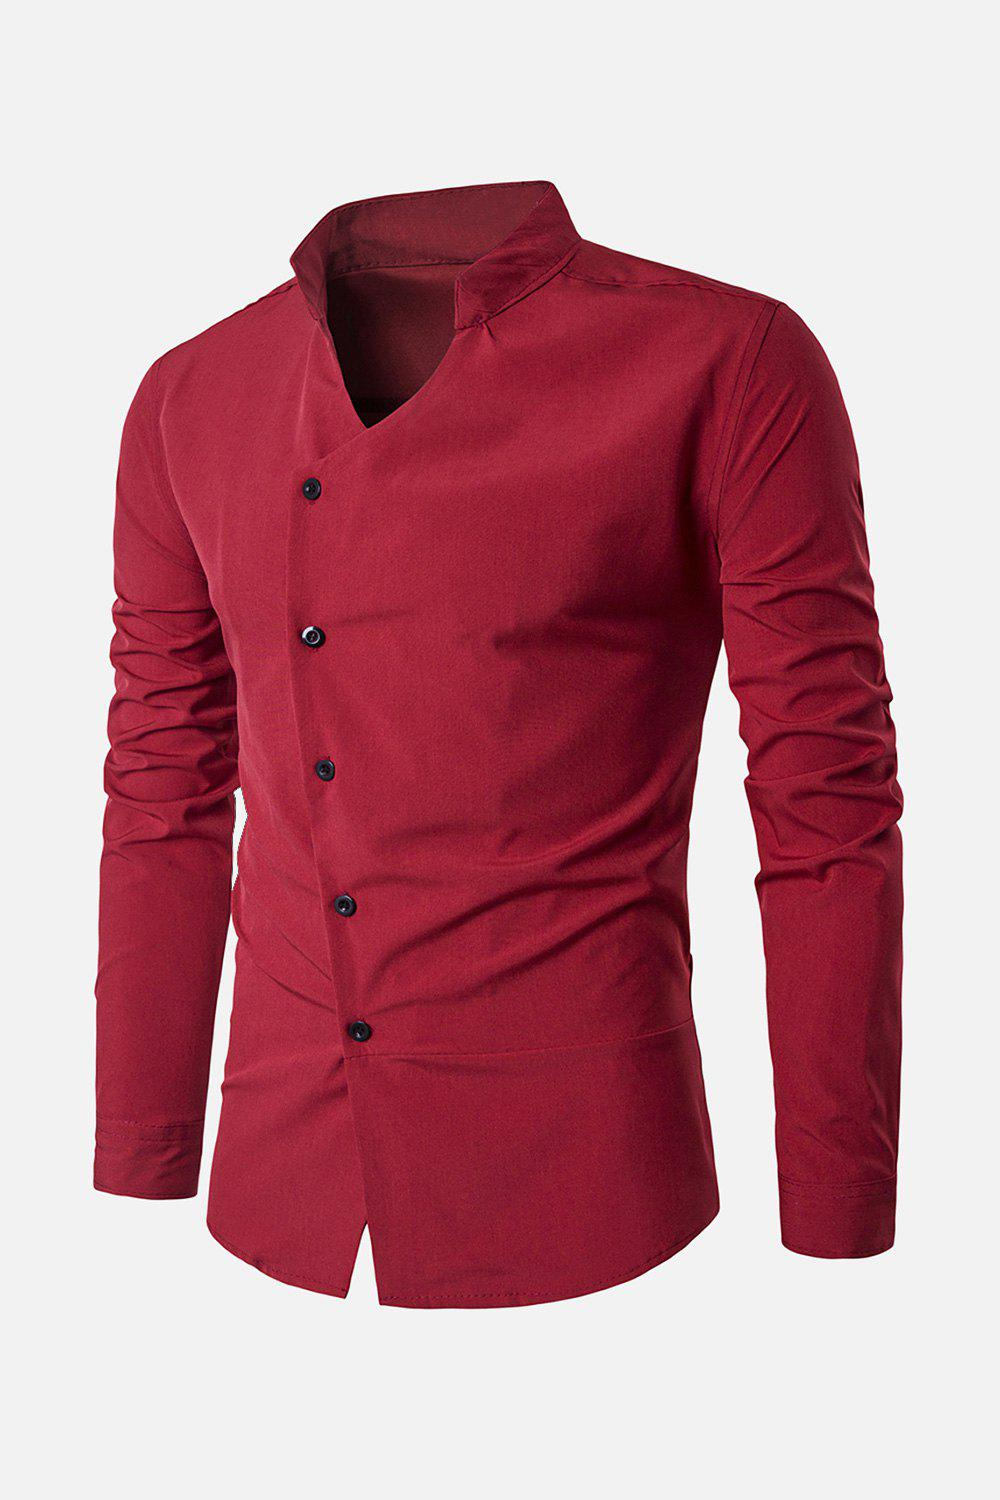 Stand Collar Long Sleeve Oblique Placket Shirt - RED XL